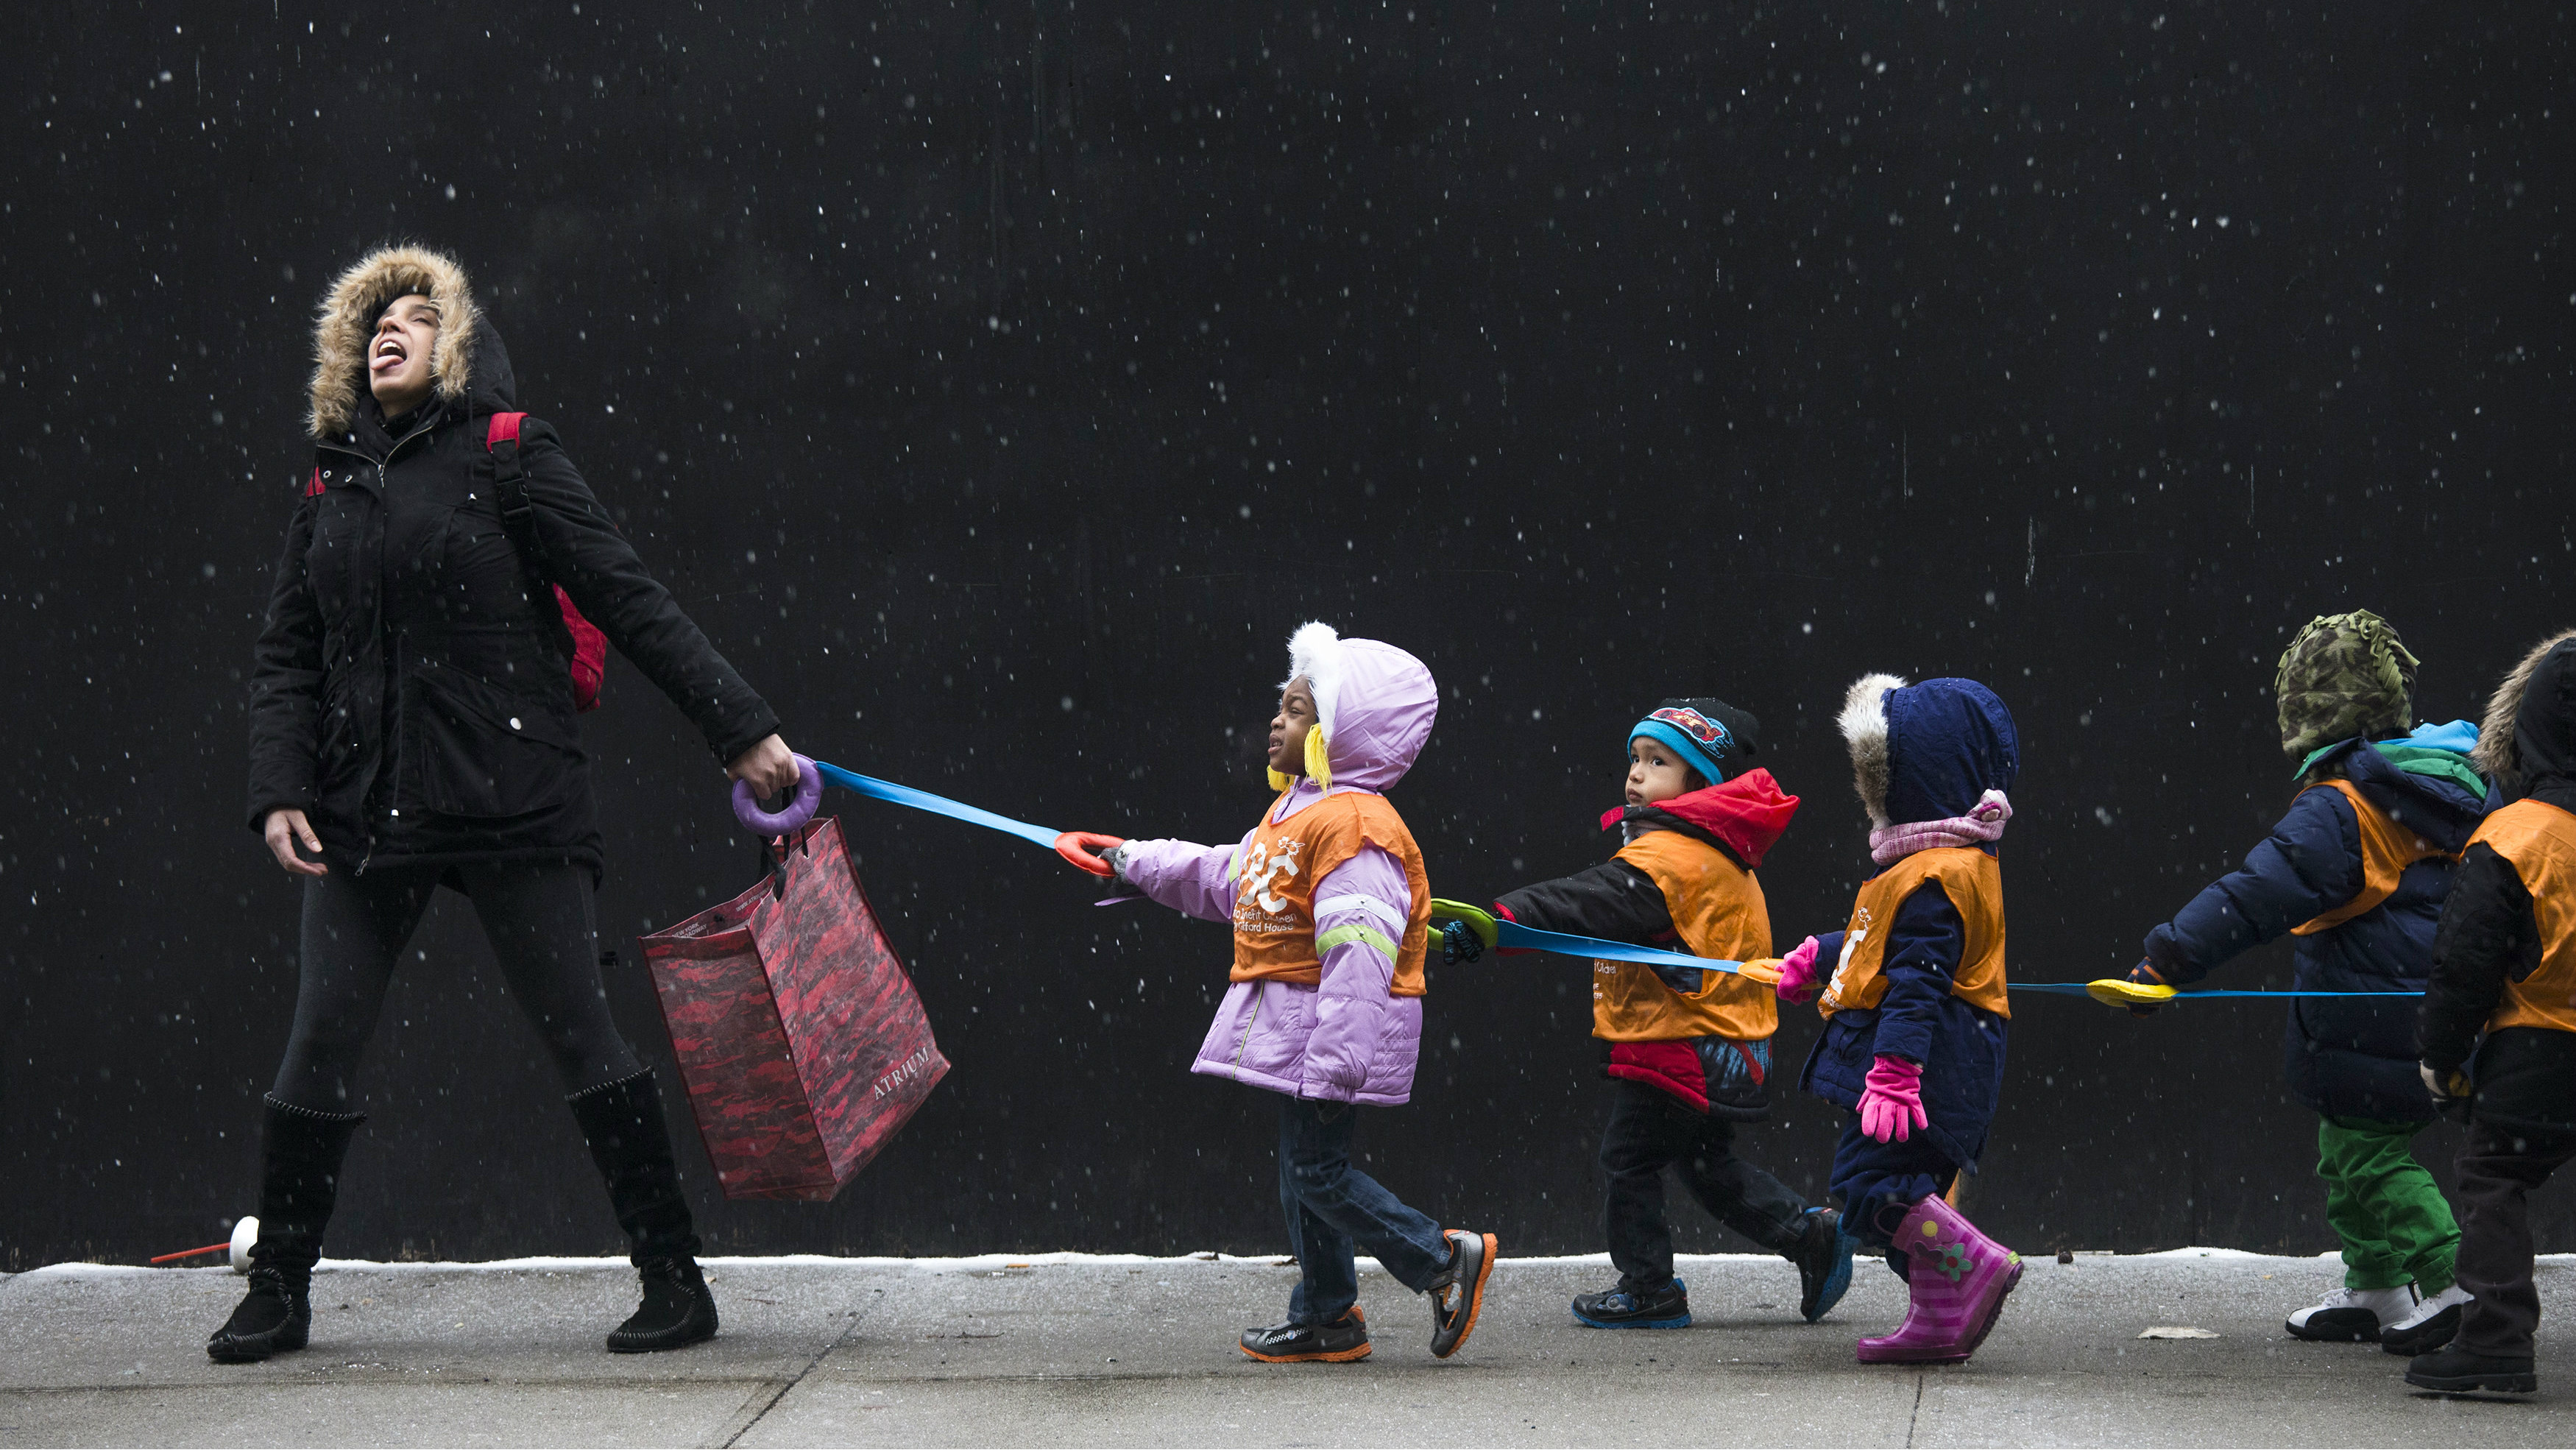 A schoolteacher, who wished to stay unidentified, attempts to catch snowflakes while leading her students...